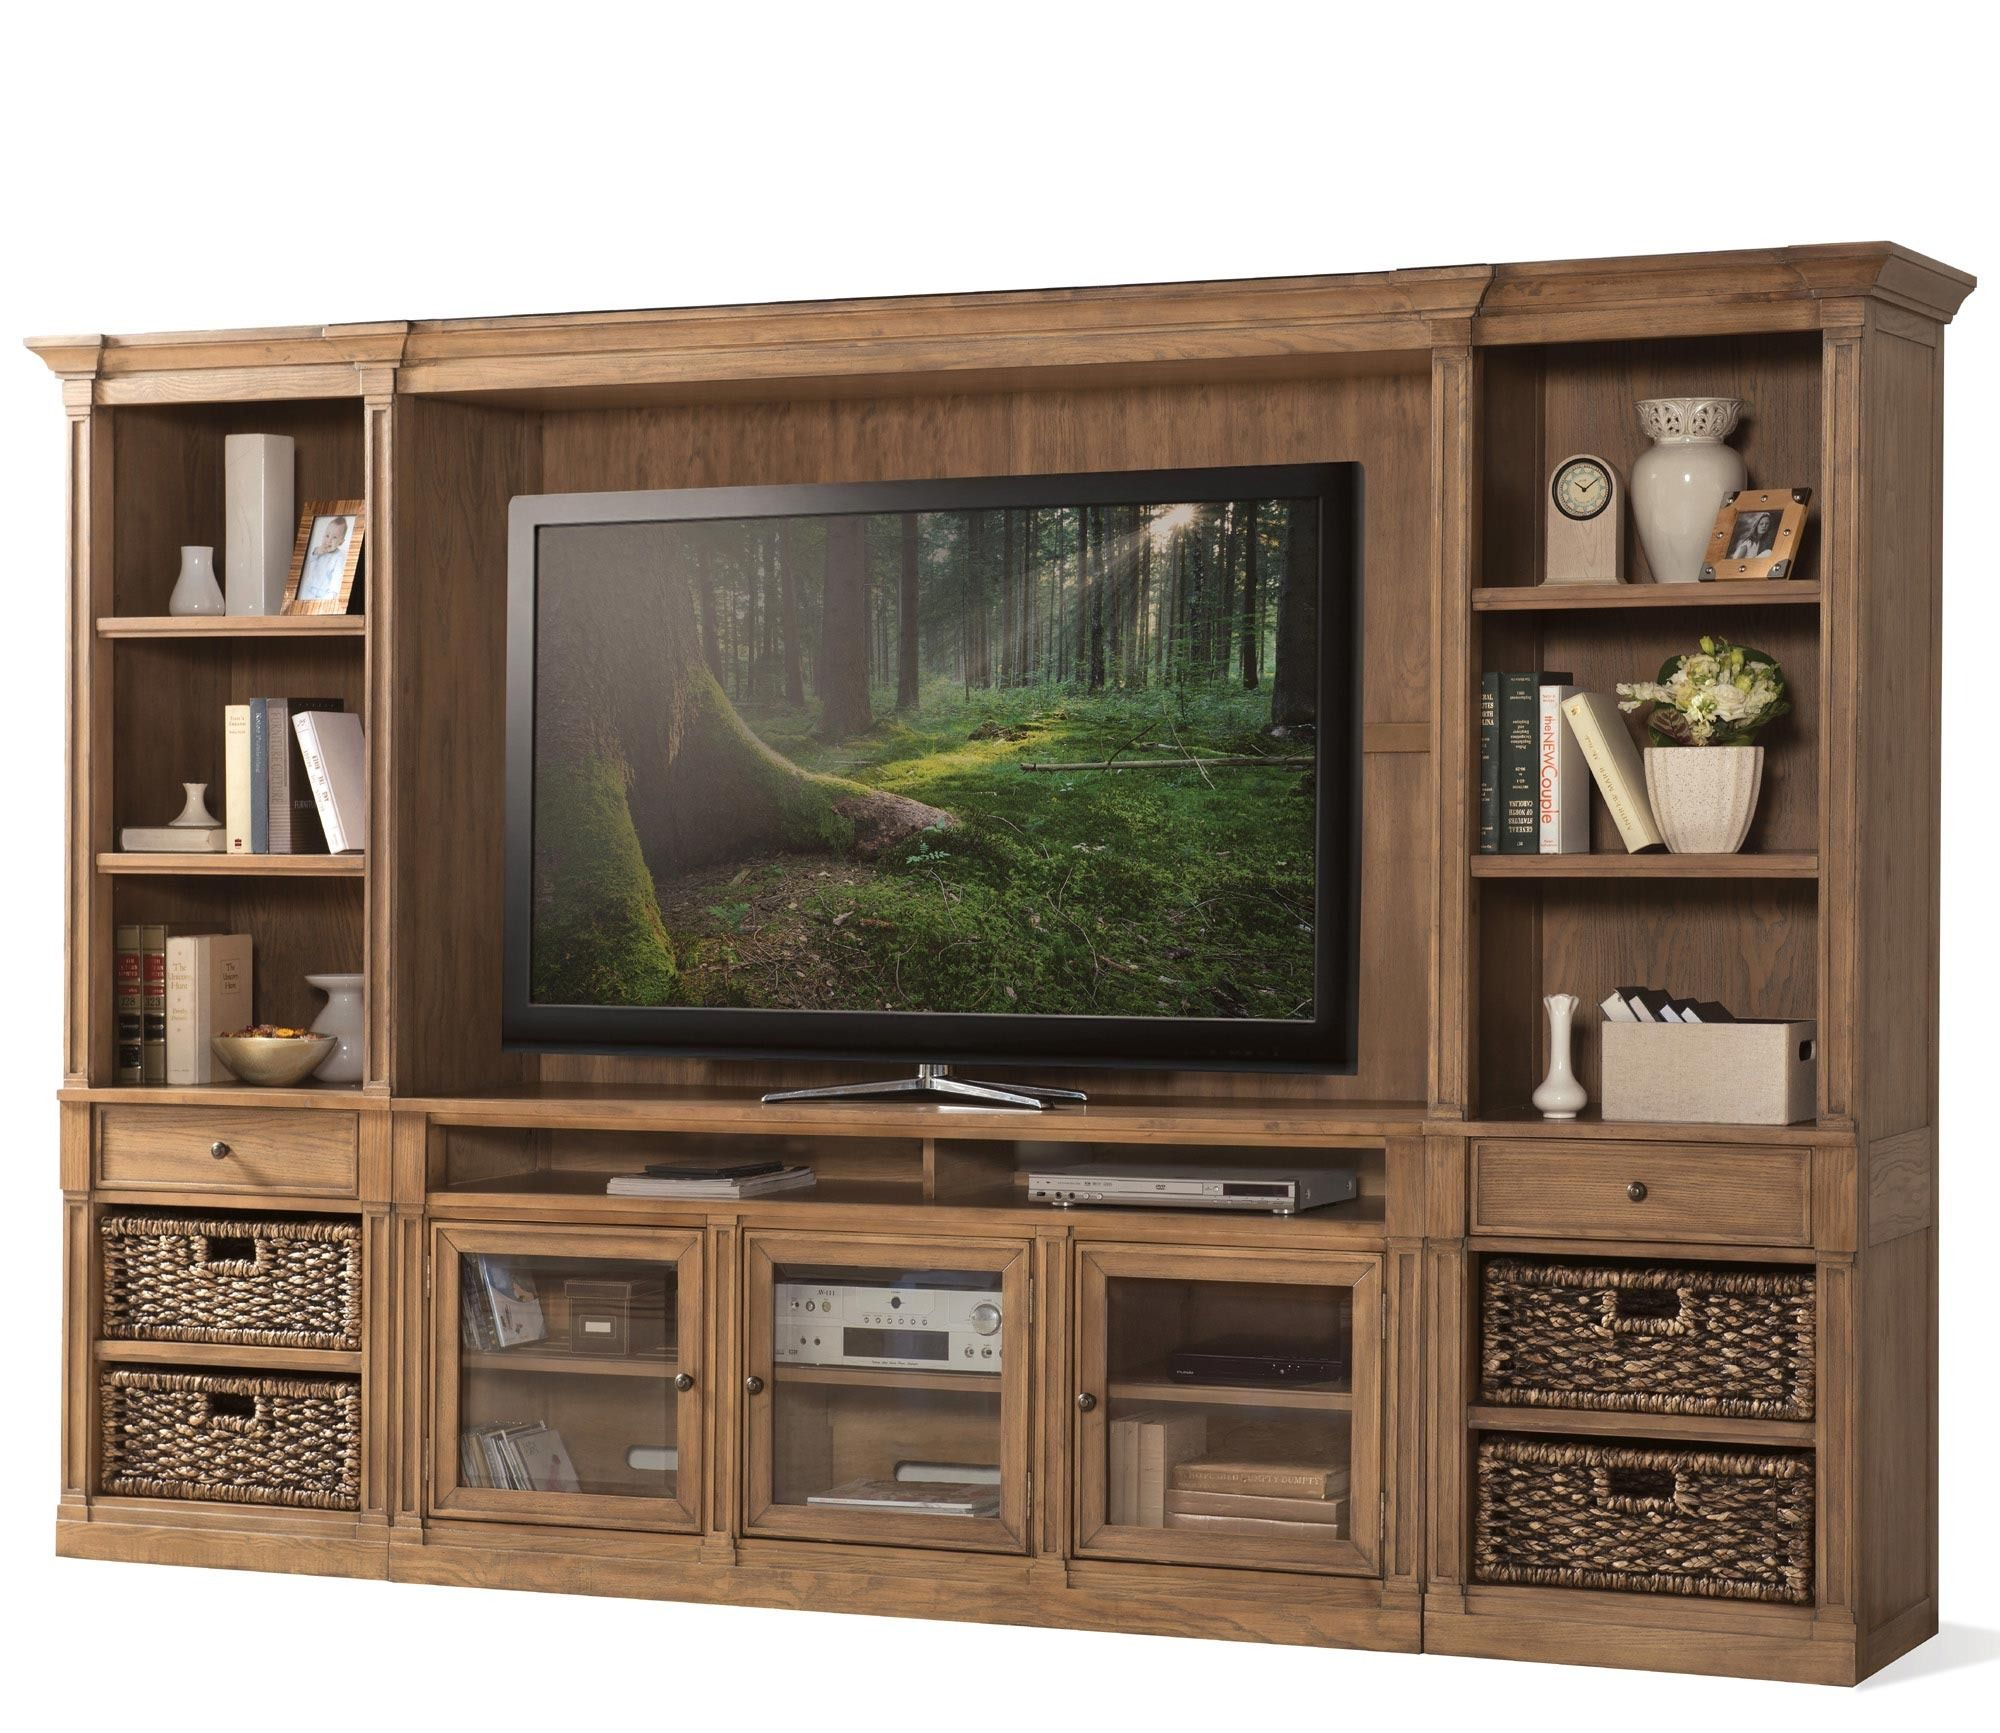 Sherborne entertainment center by riverside home gallery stores